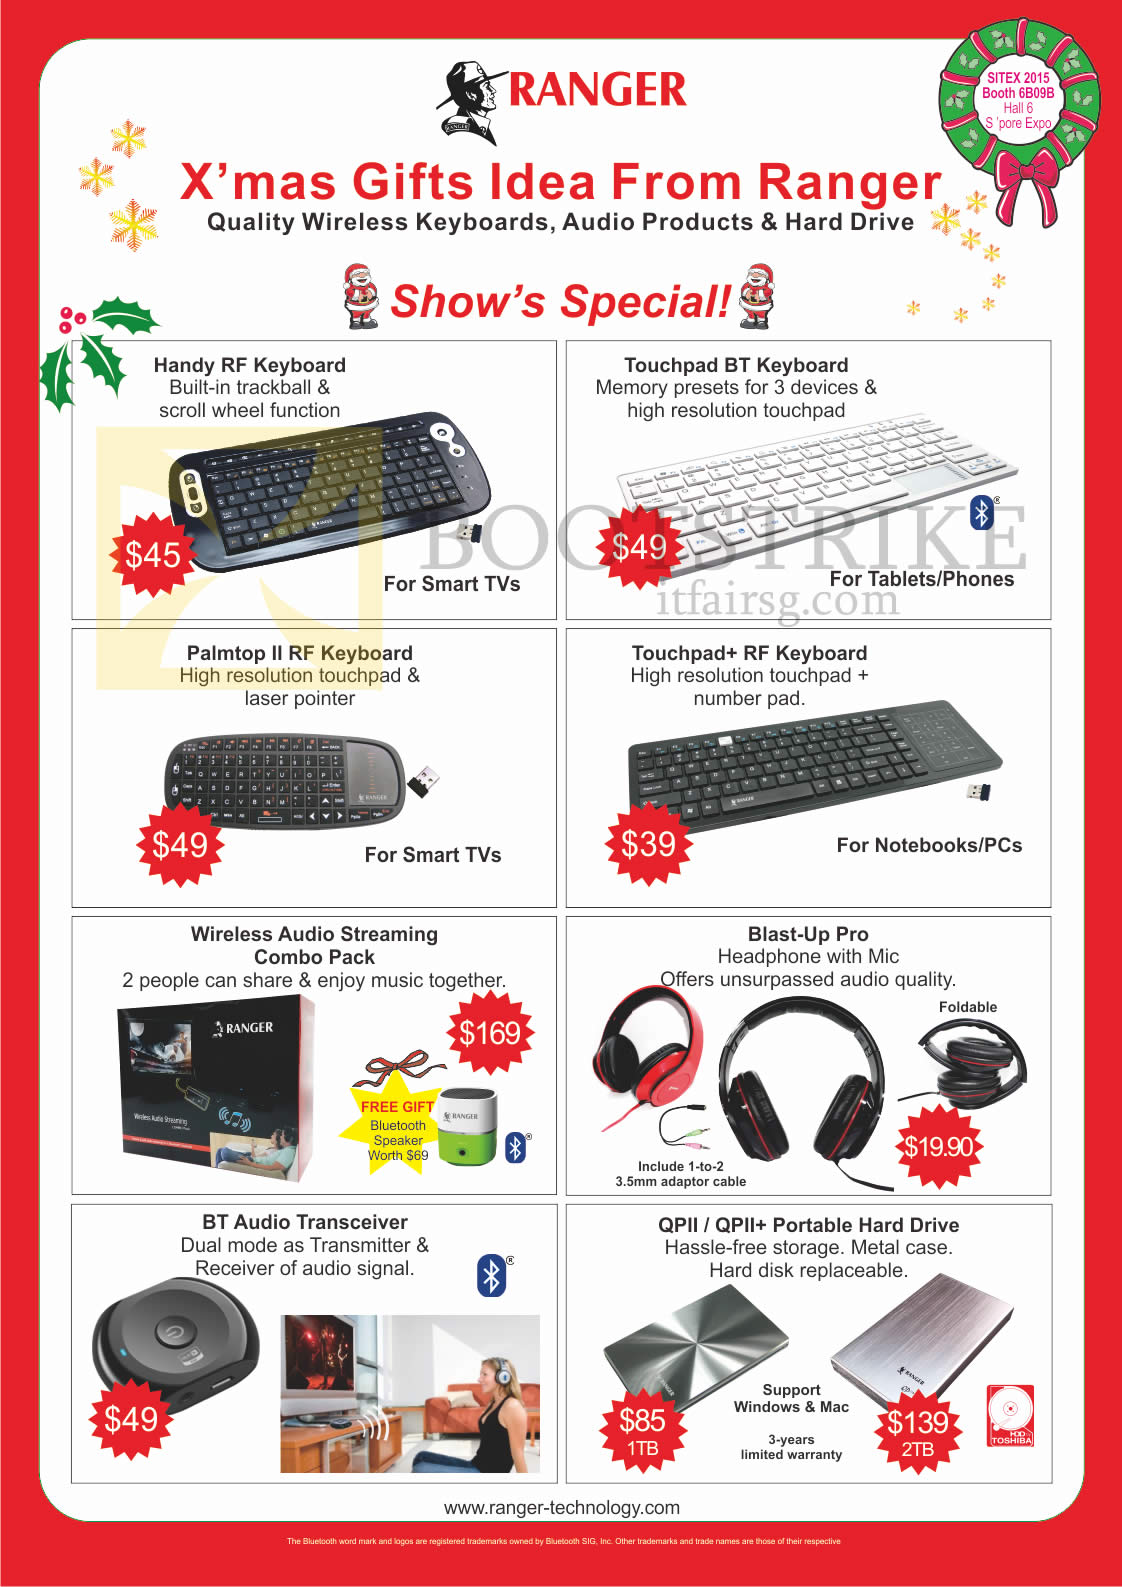 SITEX 2015 price list image brochure of Ranger Accessories Keyboards, Audio Streaming, Headphones, Audio Transceiver, Portable Hard Drive, Handy RF, Touchpad BT, Palmtop II RF, Touchpad Plus RF, Blast-Up Pro